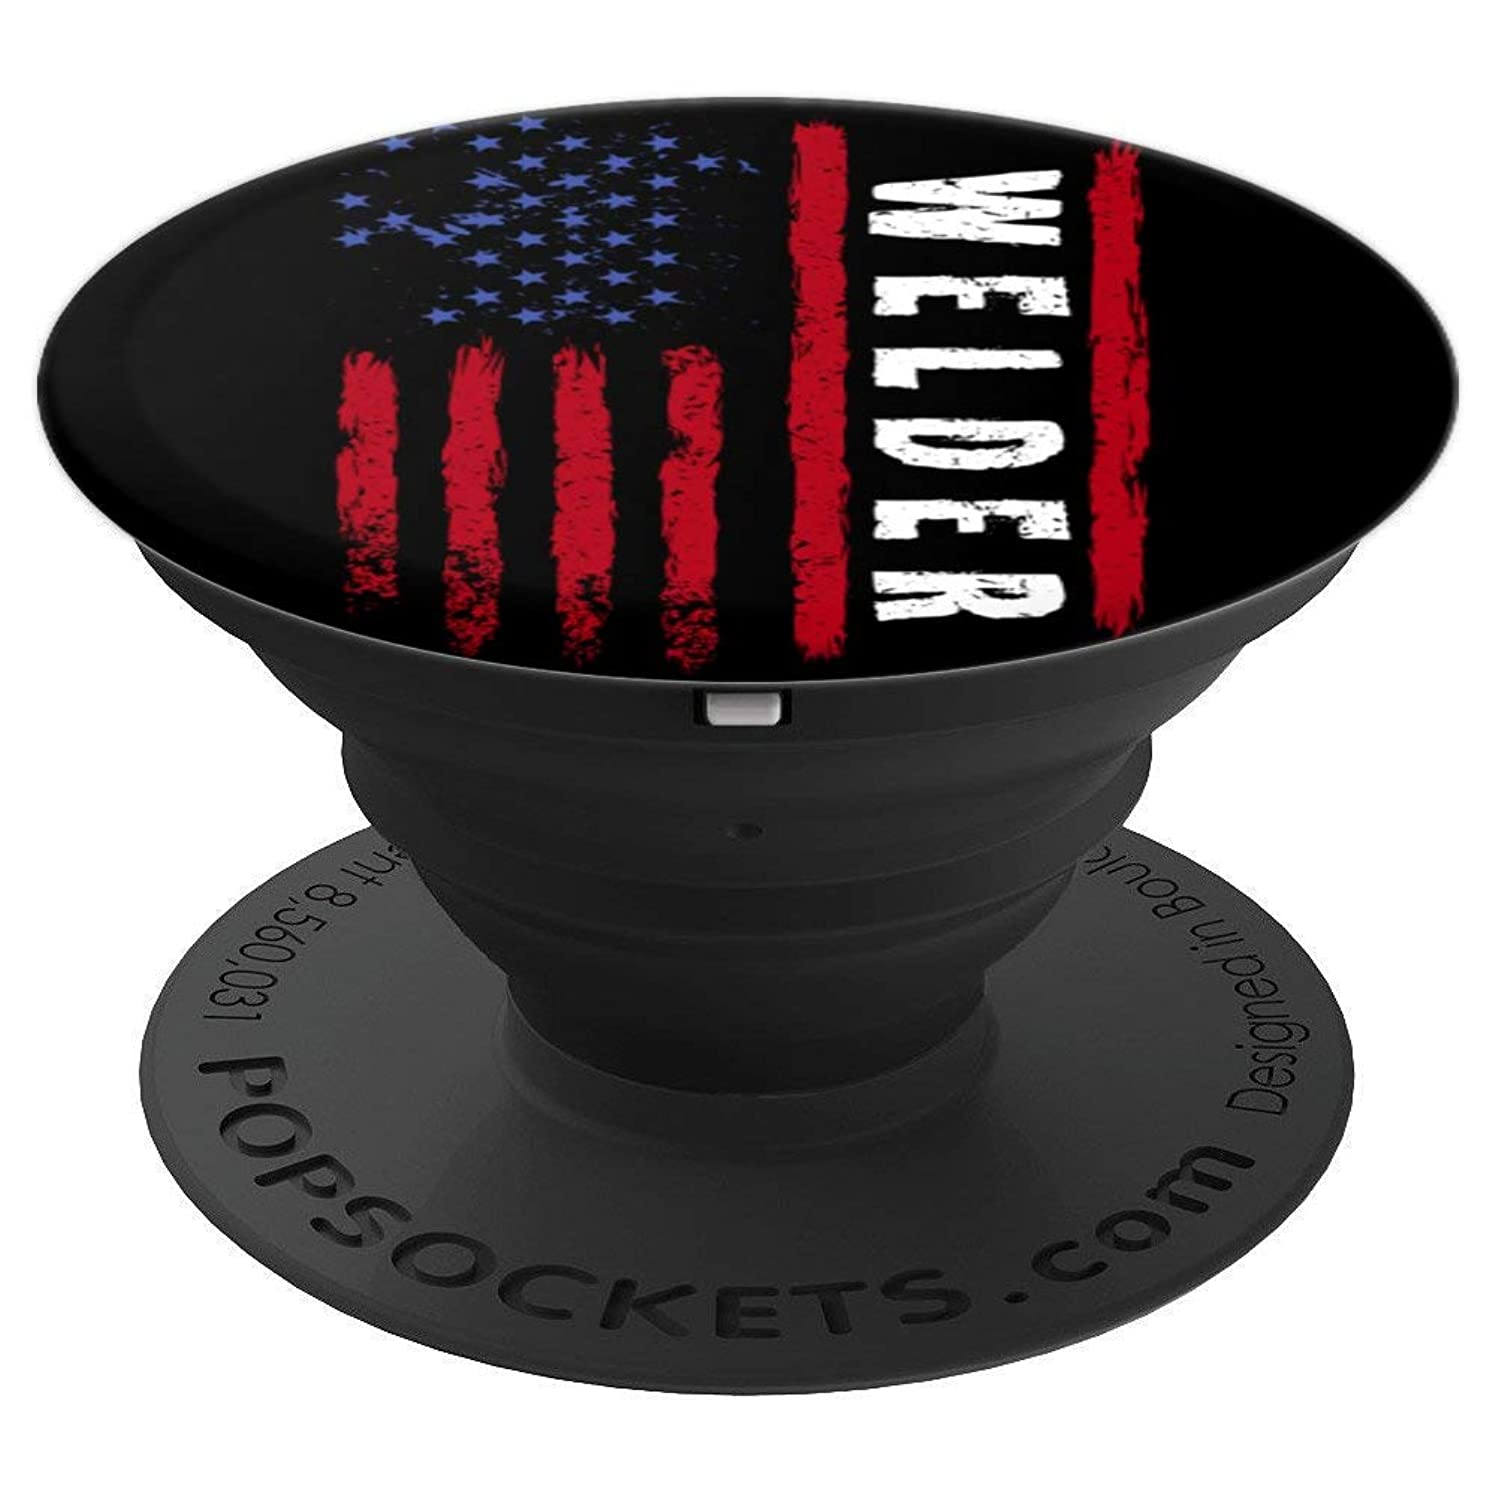 Welding America Welder Patriotic US American Flag ID4 Gift - PopSockets Grip and Stand for Phones and Tablets